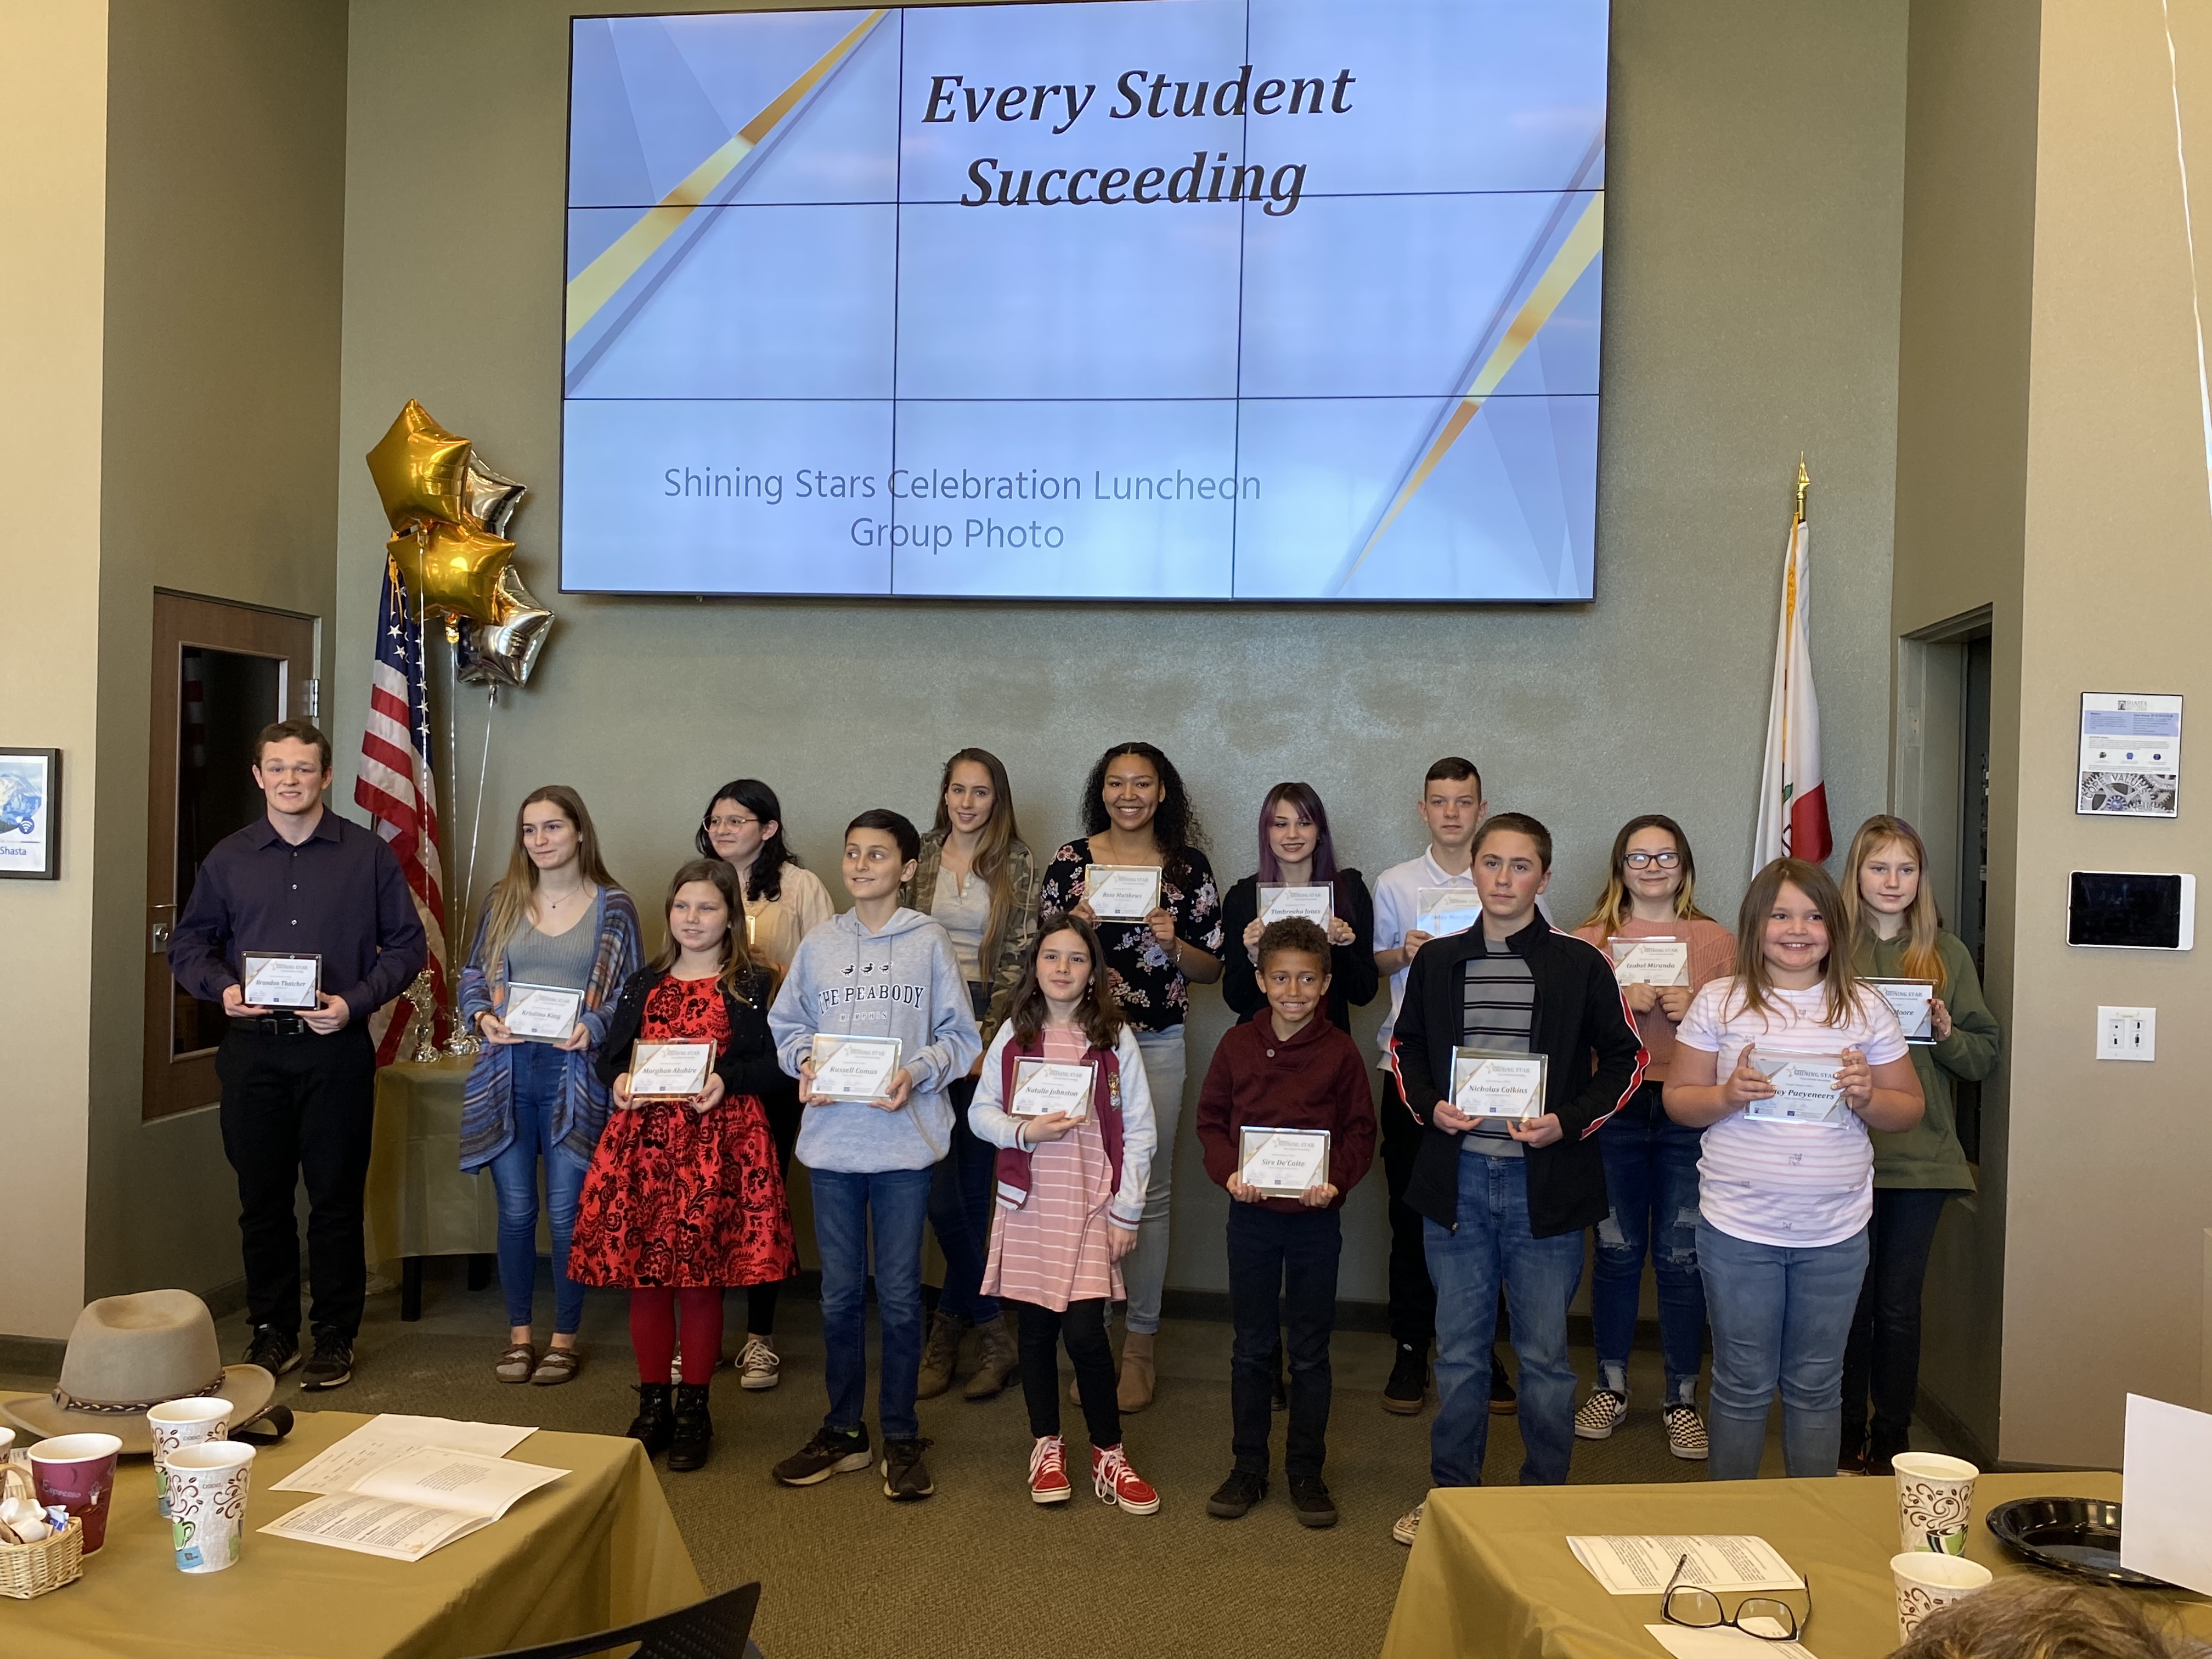 Students participating in the Every Student Succeeds luncheon